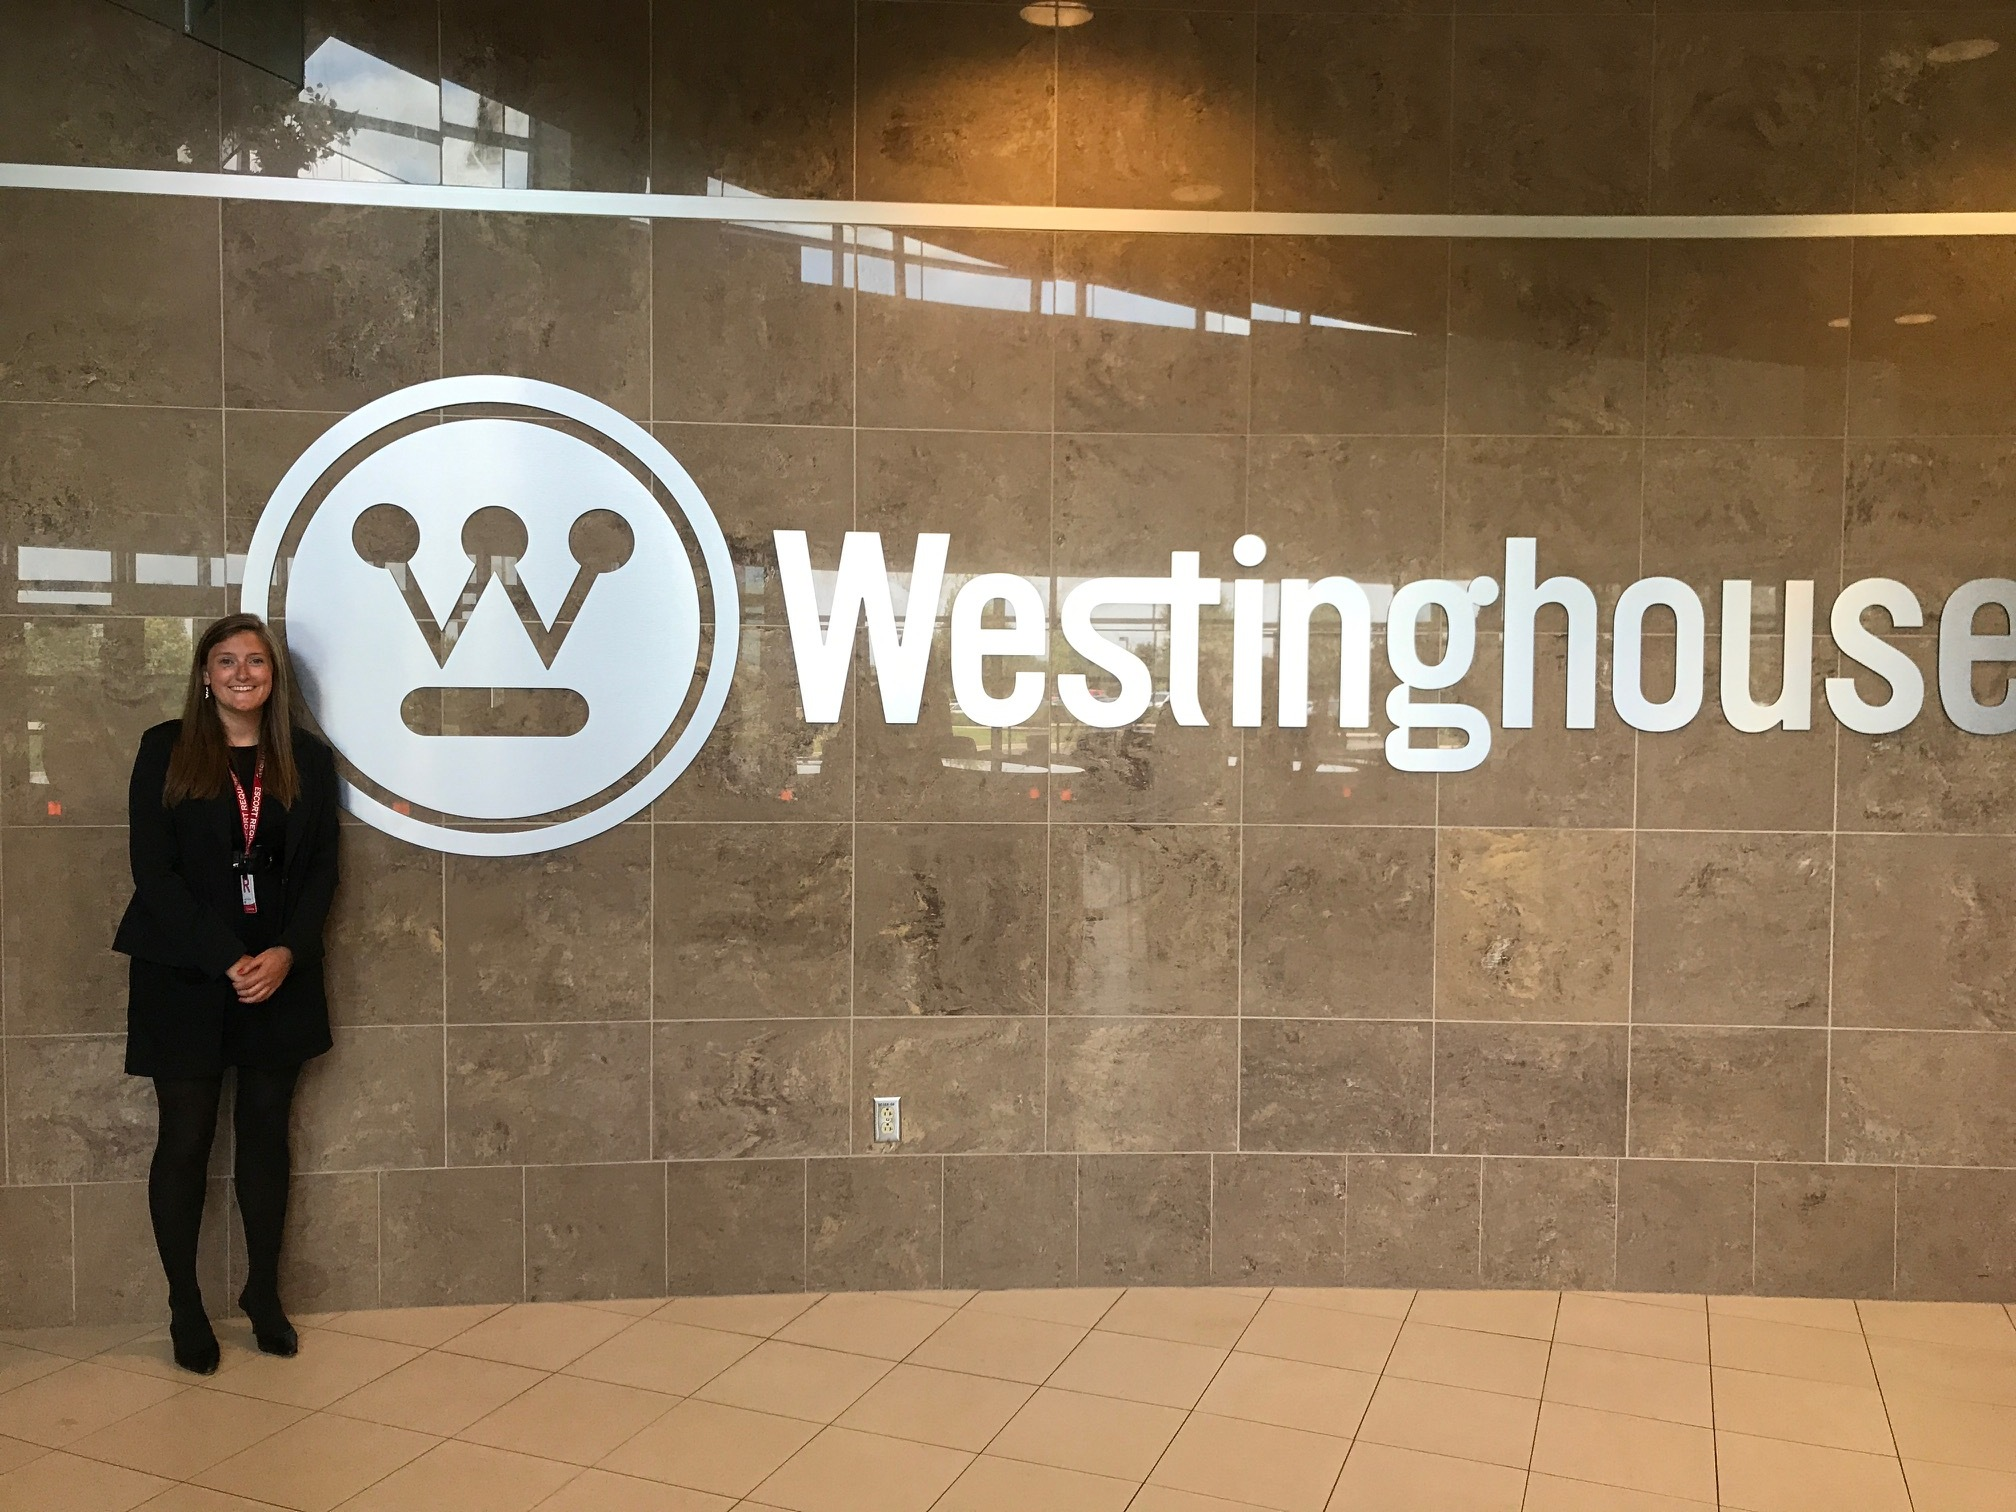 Westinghouse picture